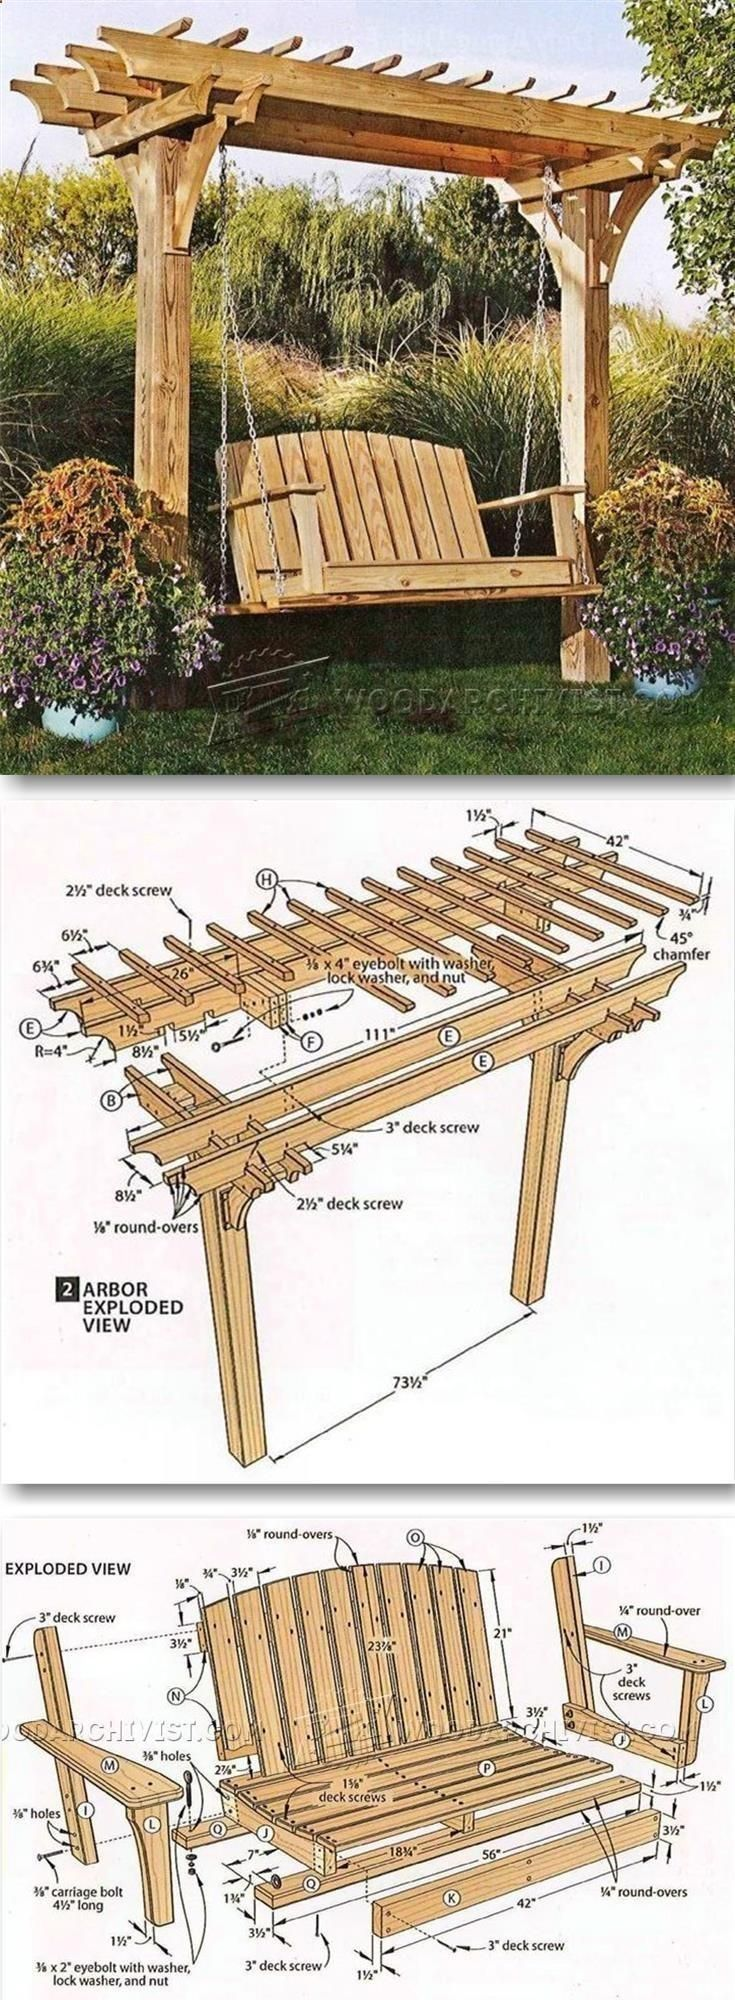 Plans of Woodworking Diy Projects - Plans of Woodworking Diy Projects - Arbor Swing Plans - Outdoor Furniture Plans Projects Get A Lifetime Of Project Ideas Inspiration! Get A Lifetime Of Project Ideas & Inspiration! #diyfurnitureplans #furnitureplans